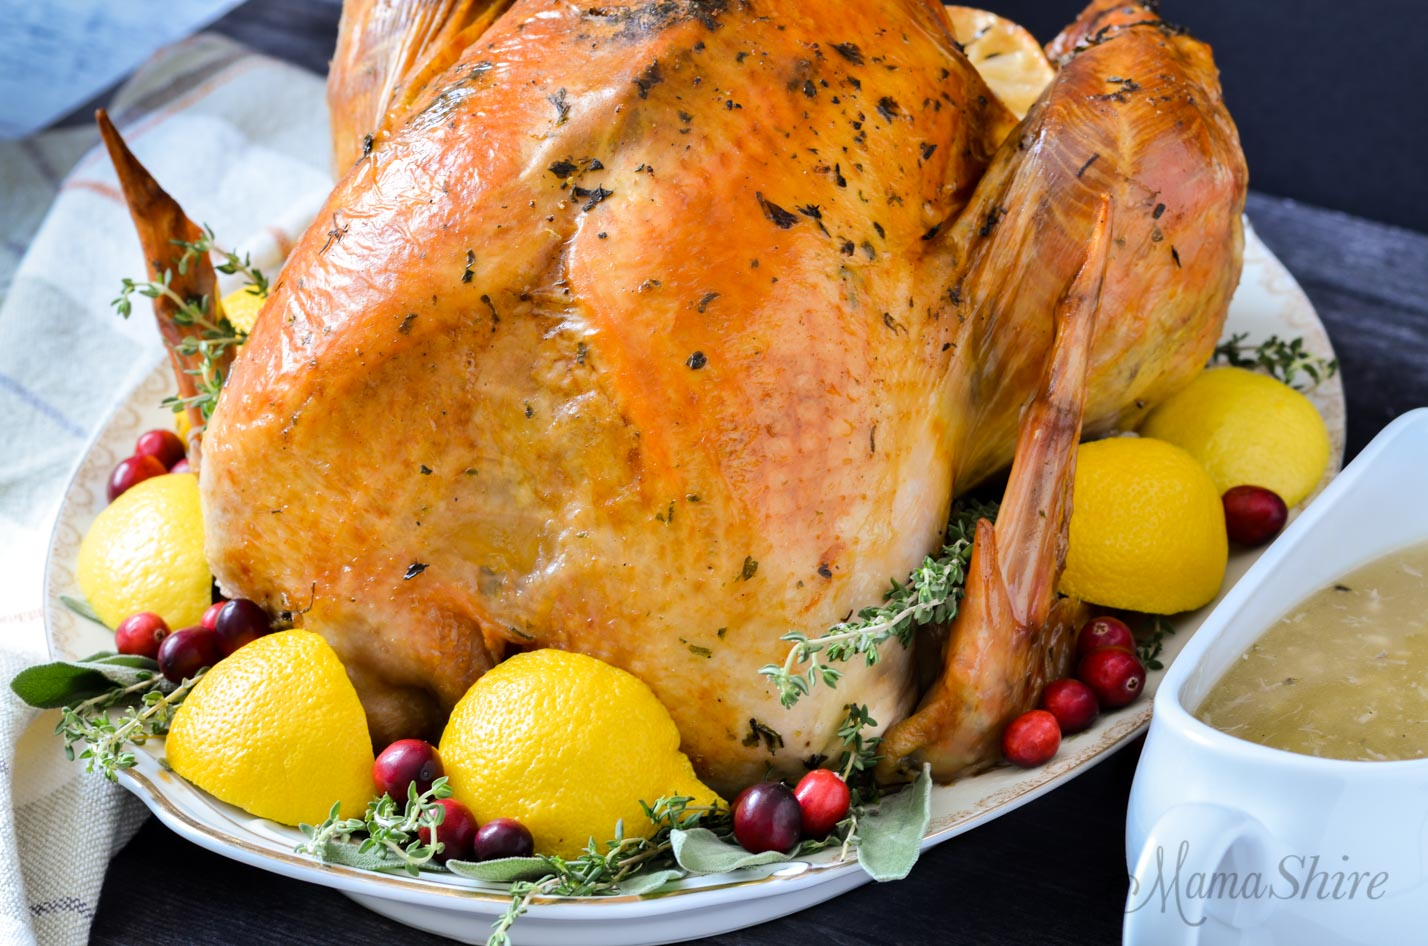 Gluten-Free Herb Roasted Turkey